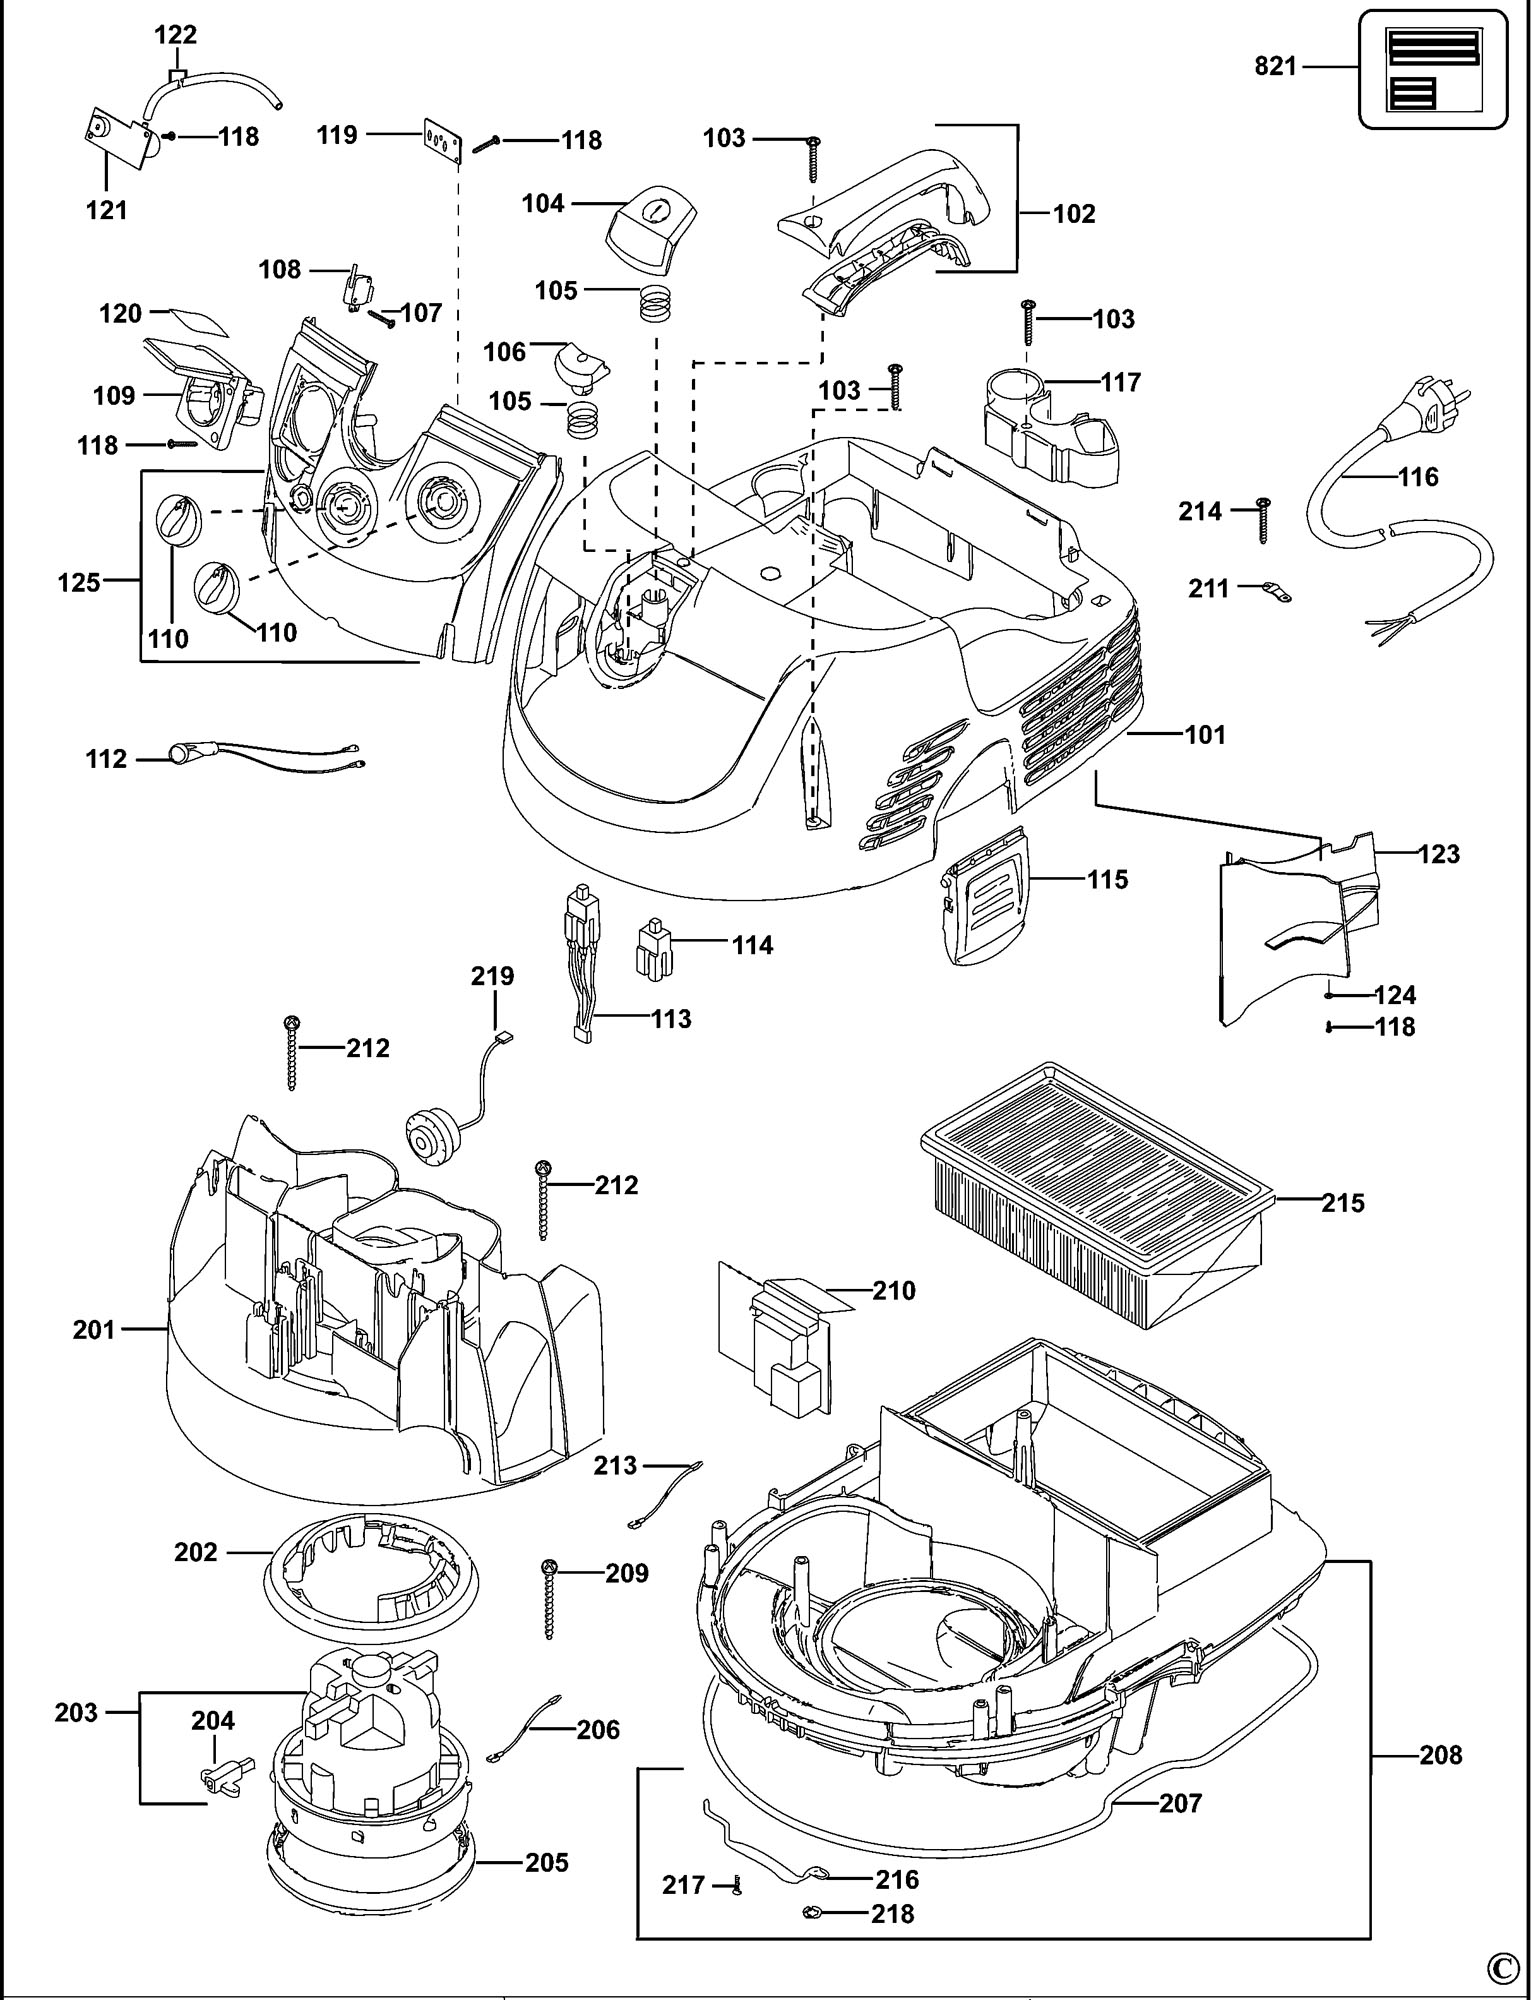 reversing baldor motor schematics wiring schematic diagram Baldor Capacitor Replacement baldor motor wiring connection wiring diagram database baldor capacitor wiring diagram 1 phase motor wiring diagram